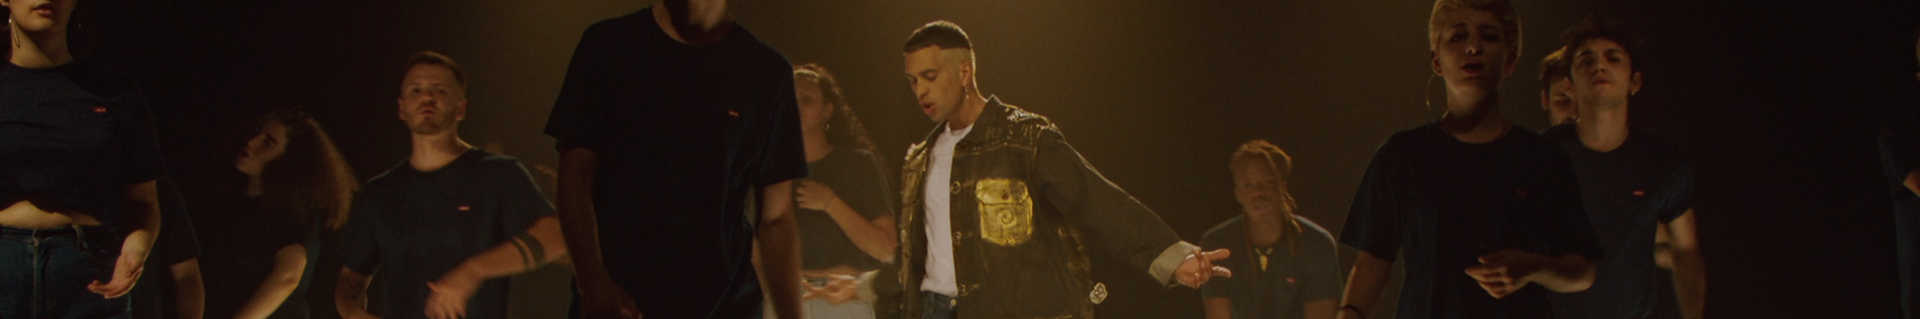 LEVI'S MUSIC PROJECT x MAHMOOD // BACK TO US